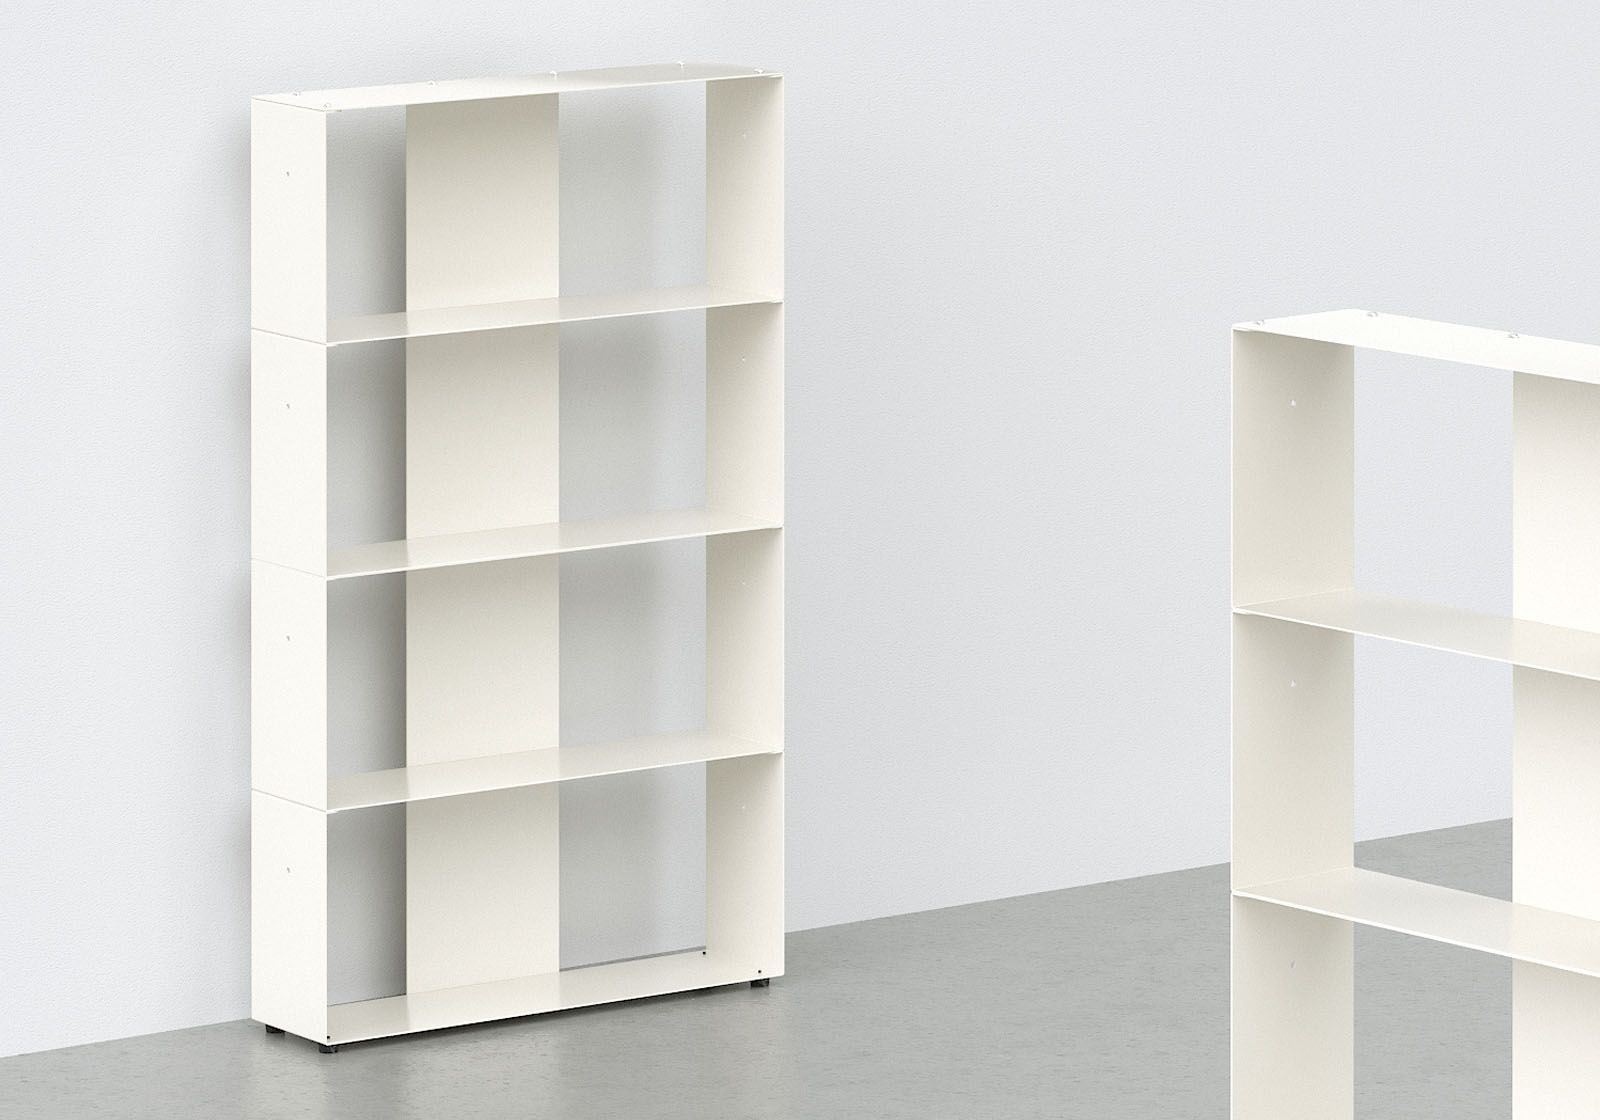 meuble biblioth que design 60 cm m tal blanc 4 niveaux. Black Bedroom Furniture Sets. Home Design Ideas